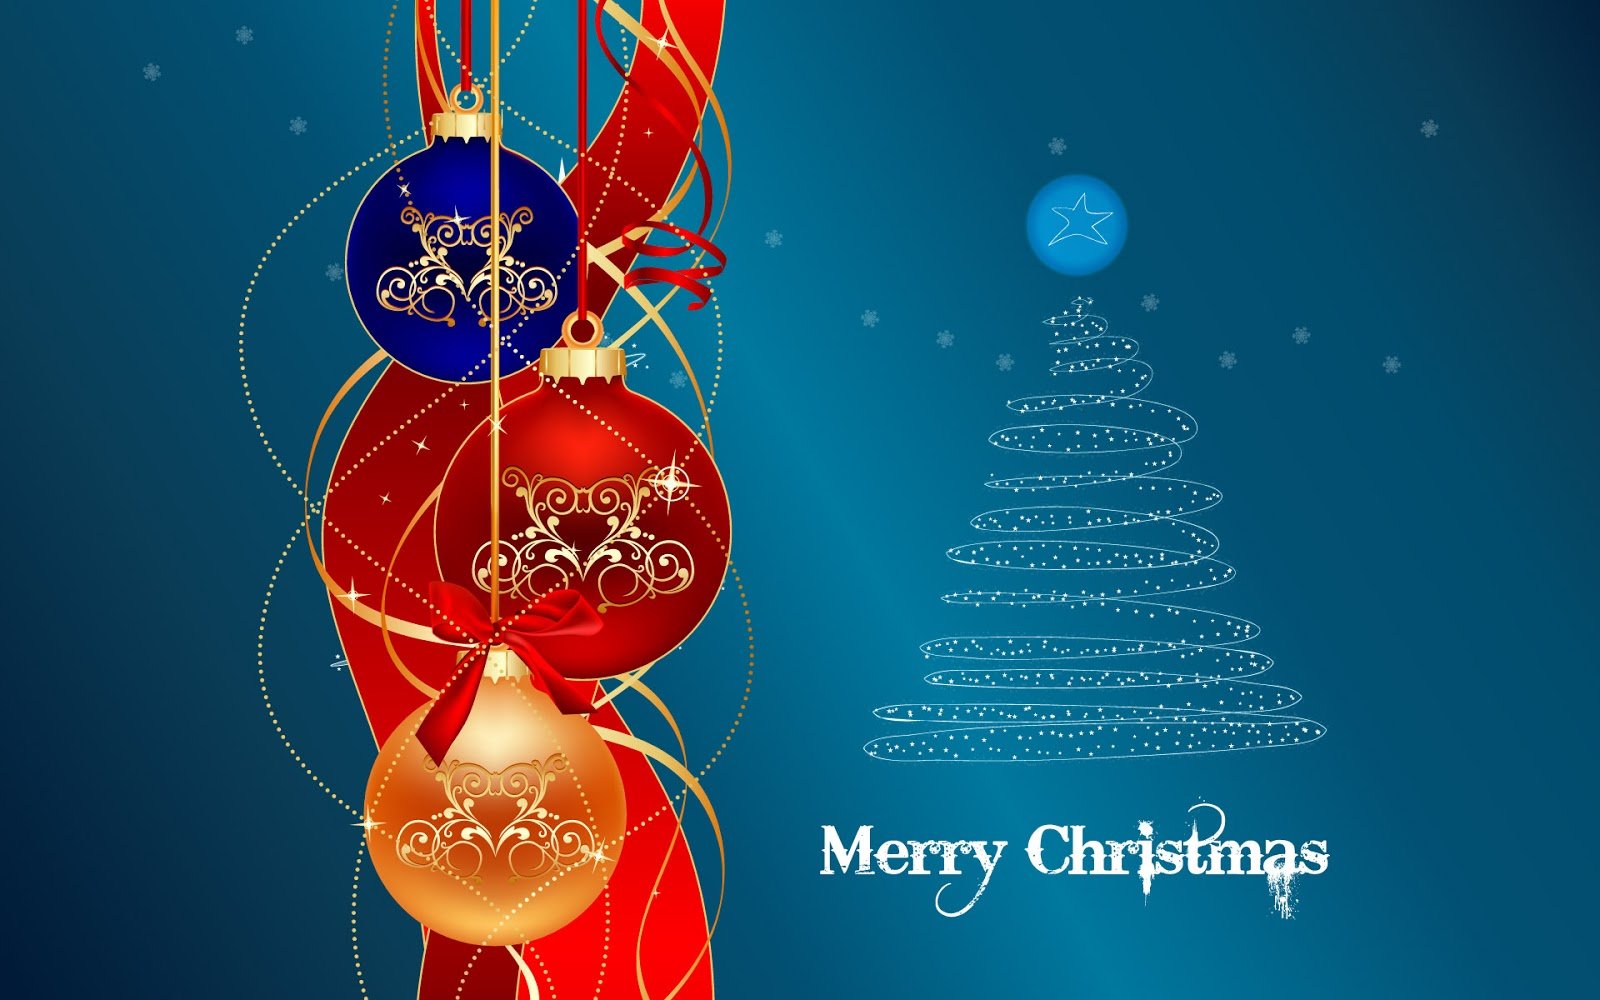 hd wallpaper download  best and top merry christmas high